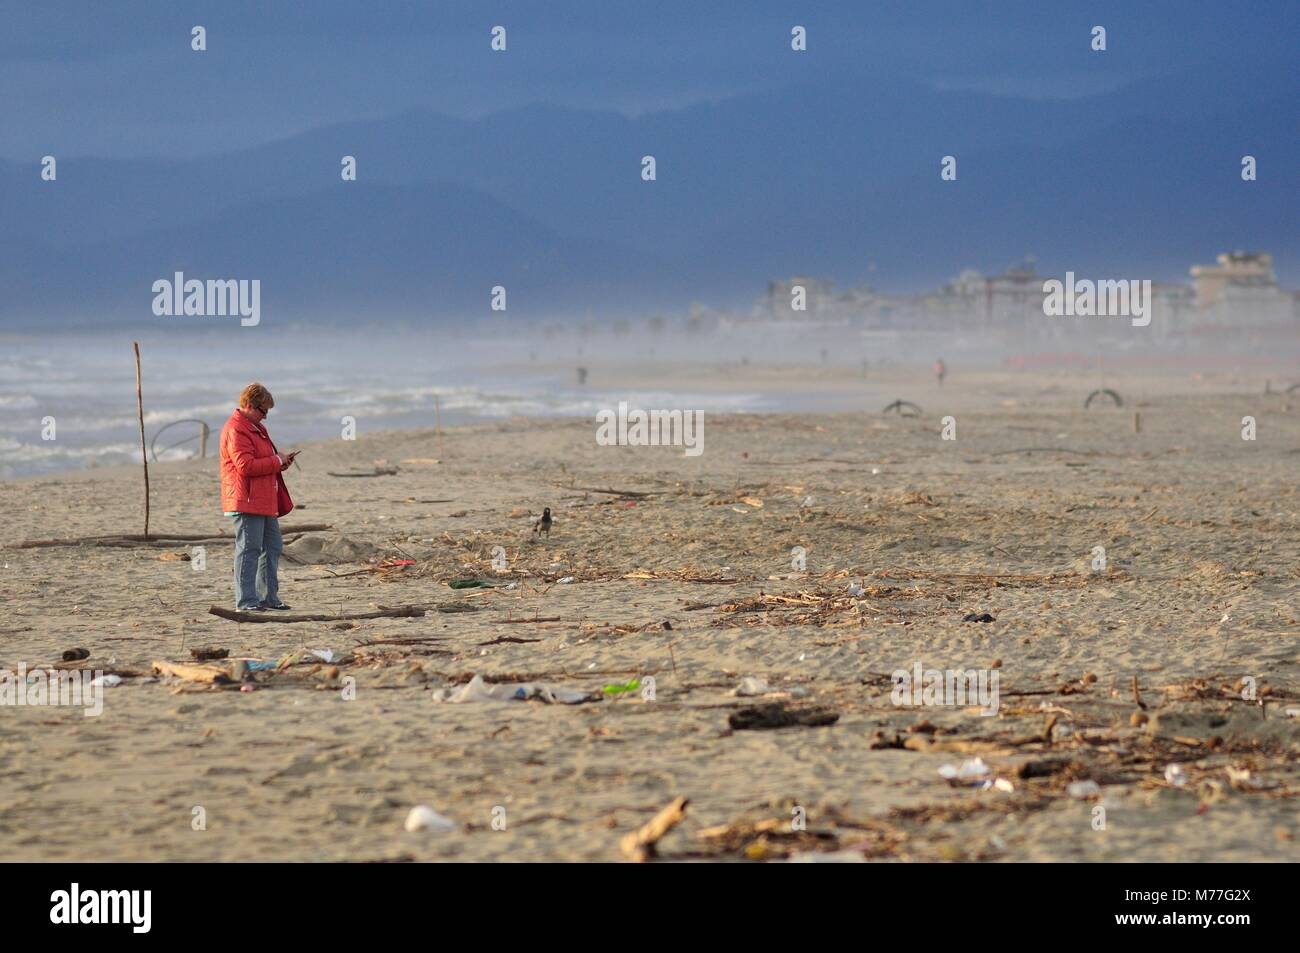 Mature woman using phone in a polluted beach - Stock Image